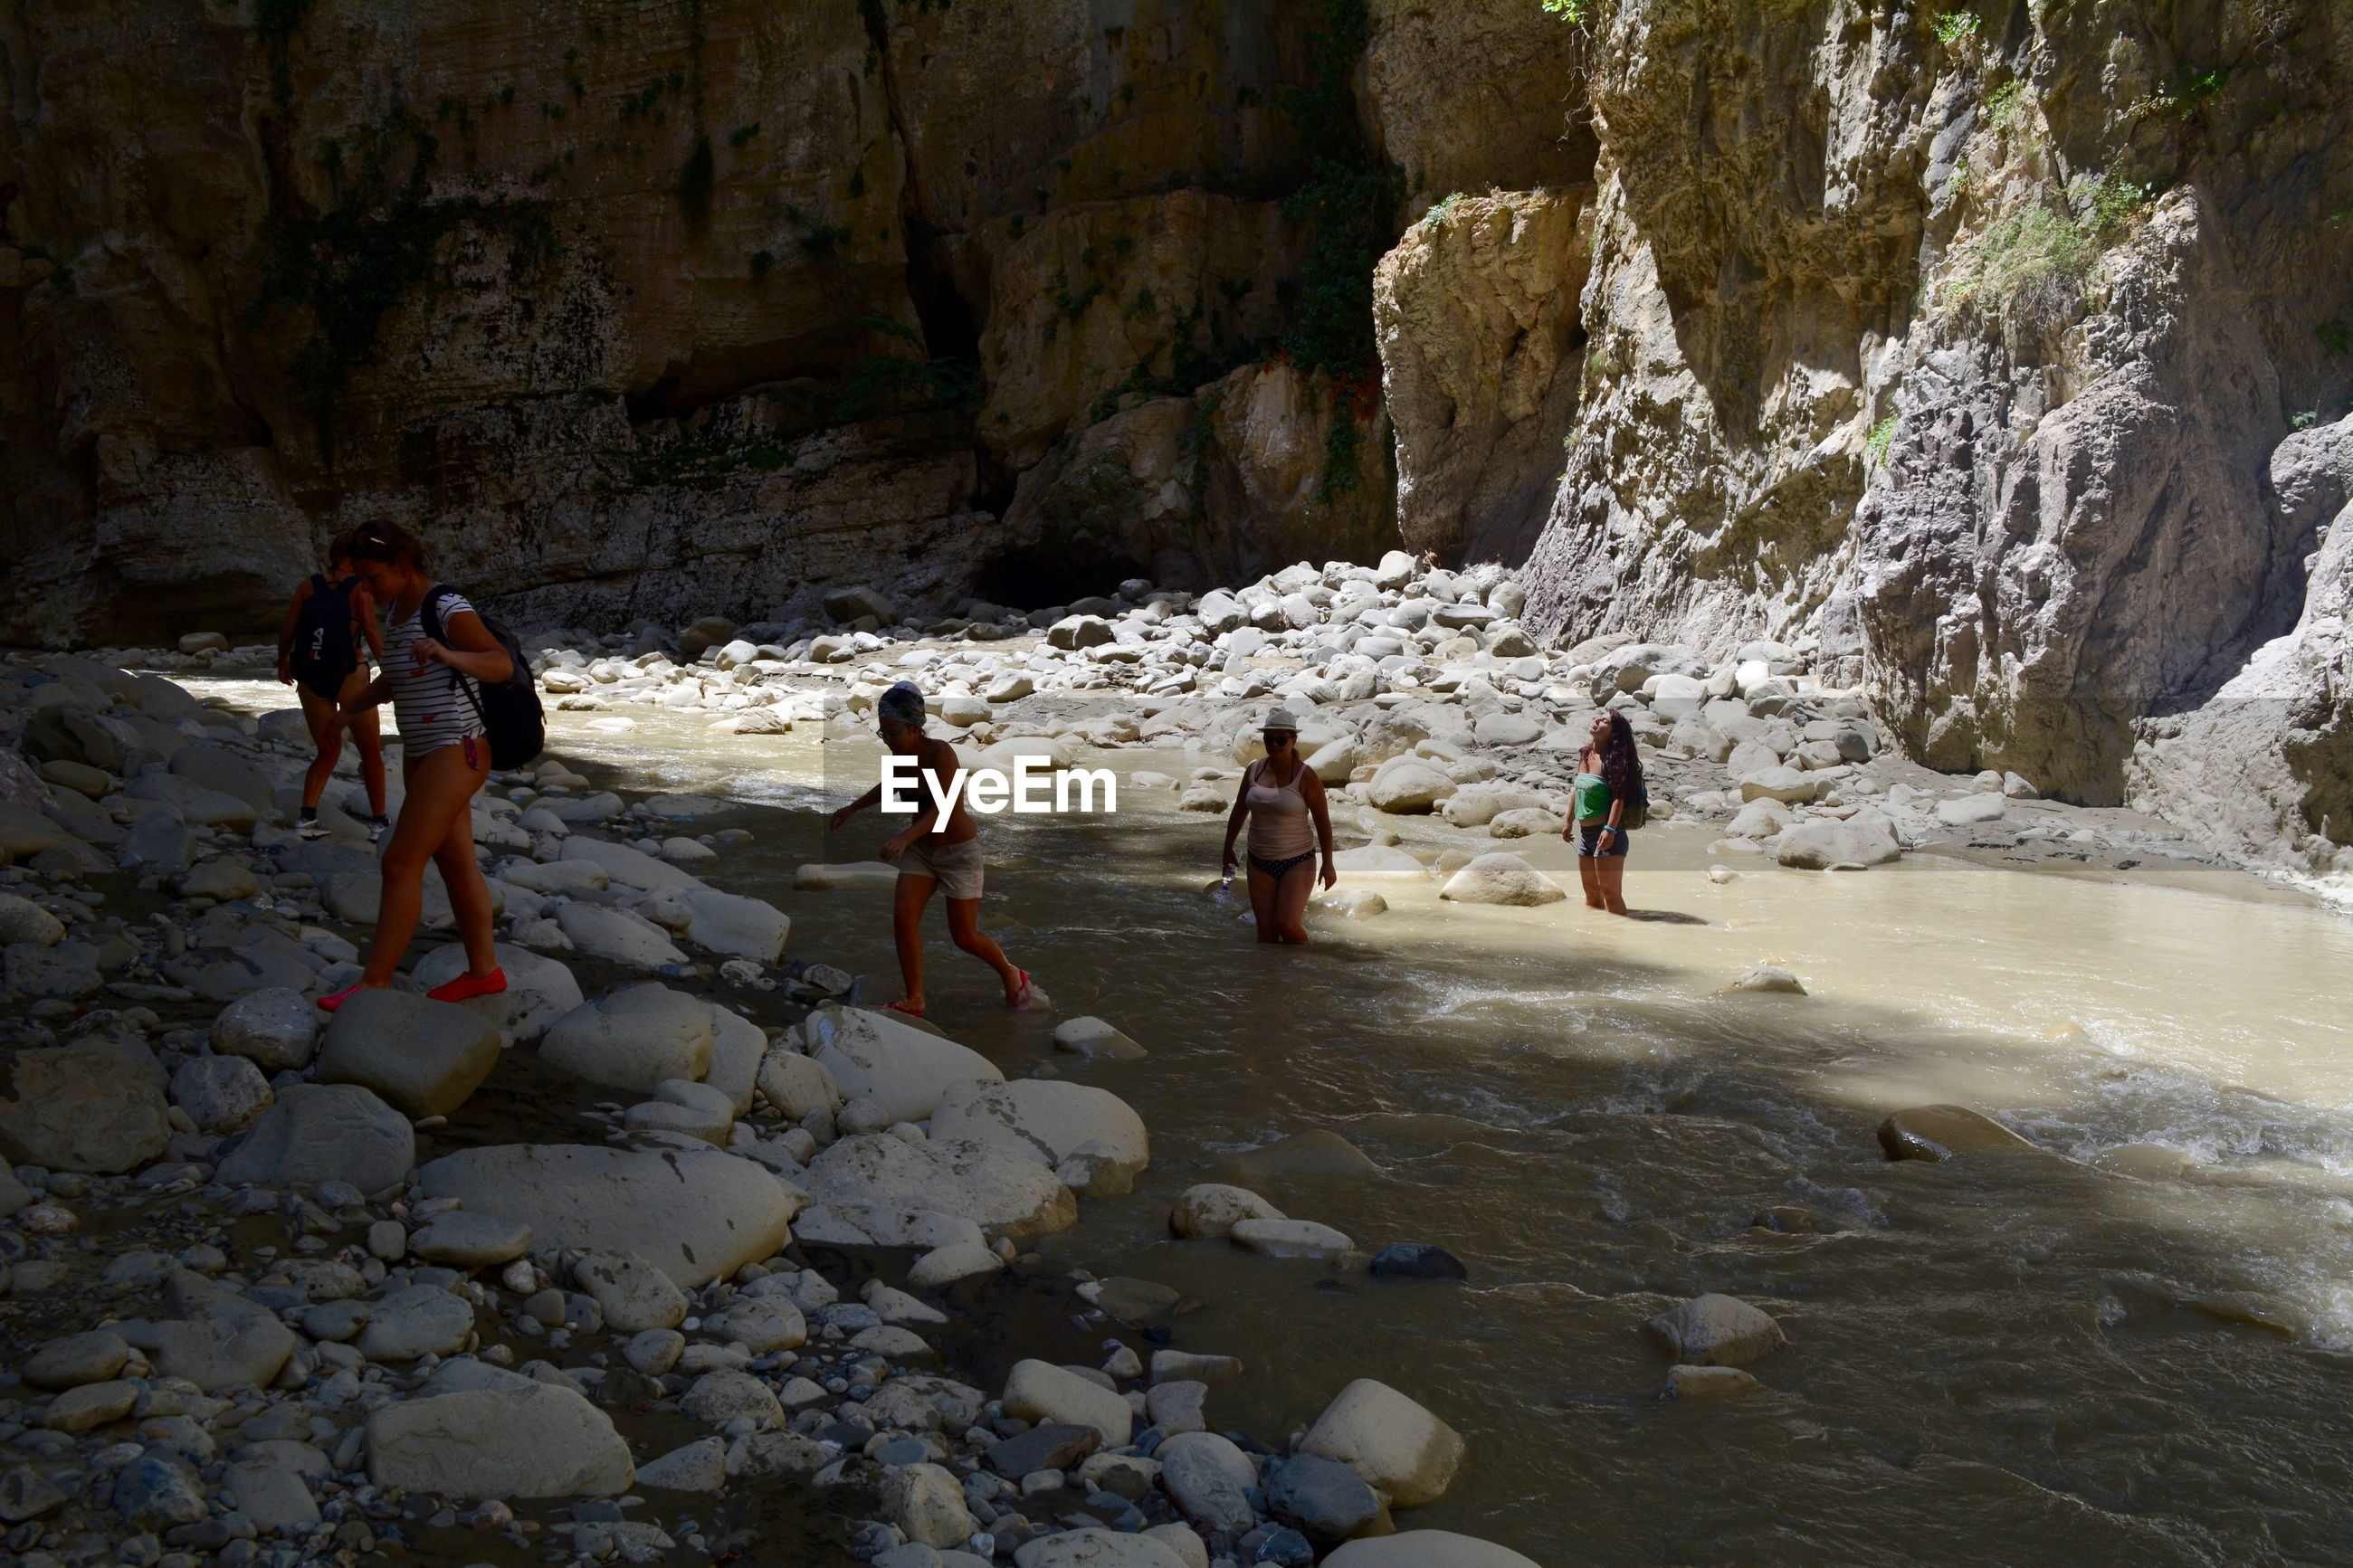 Friends crossing river against rock formations